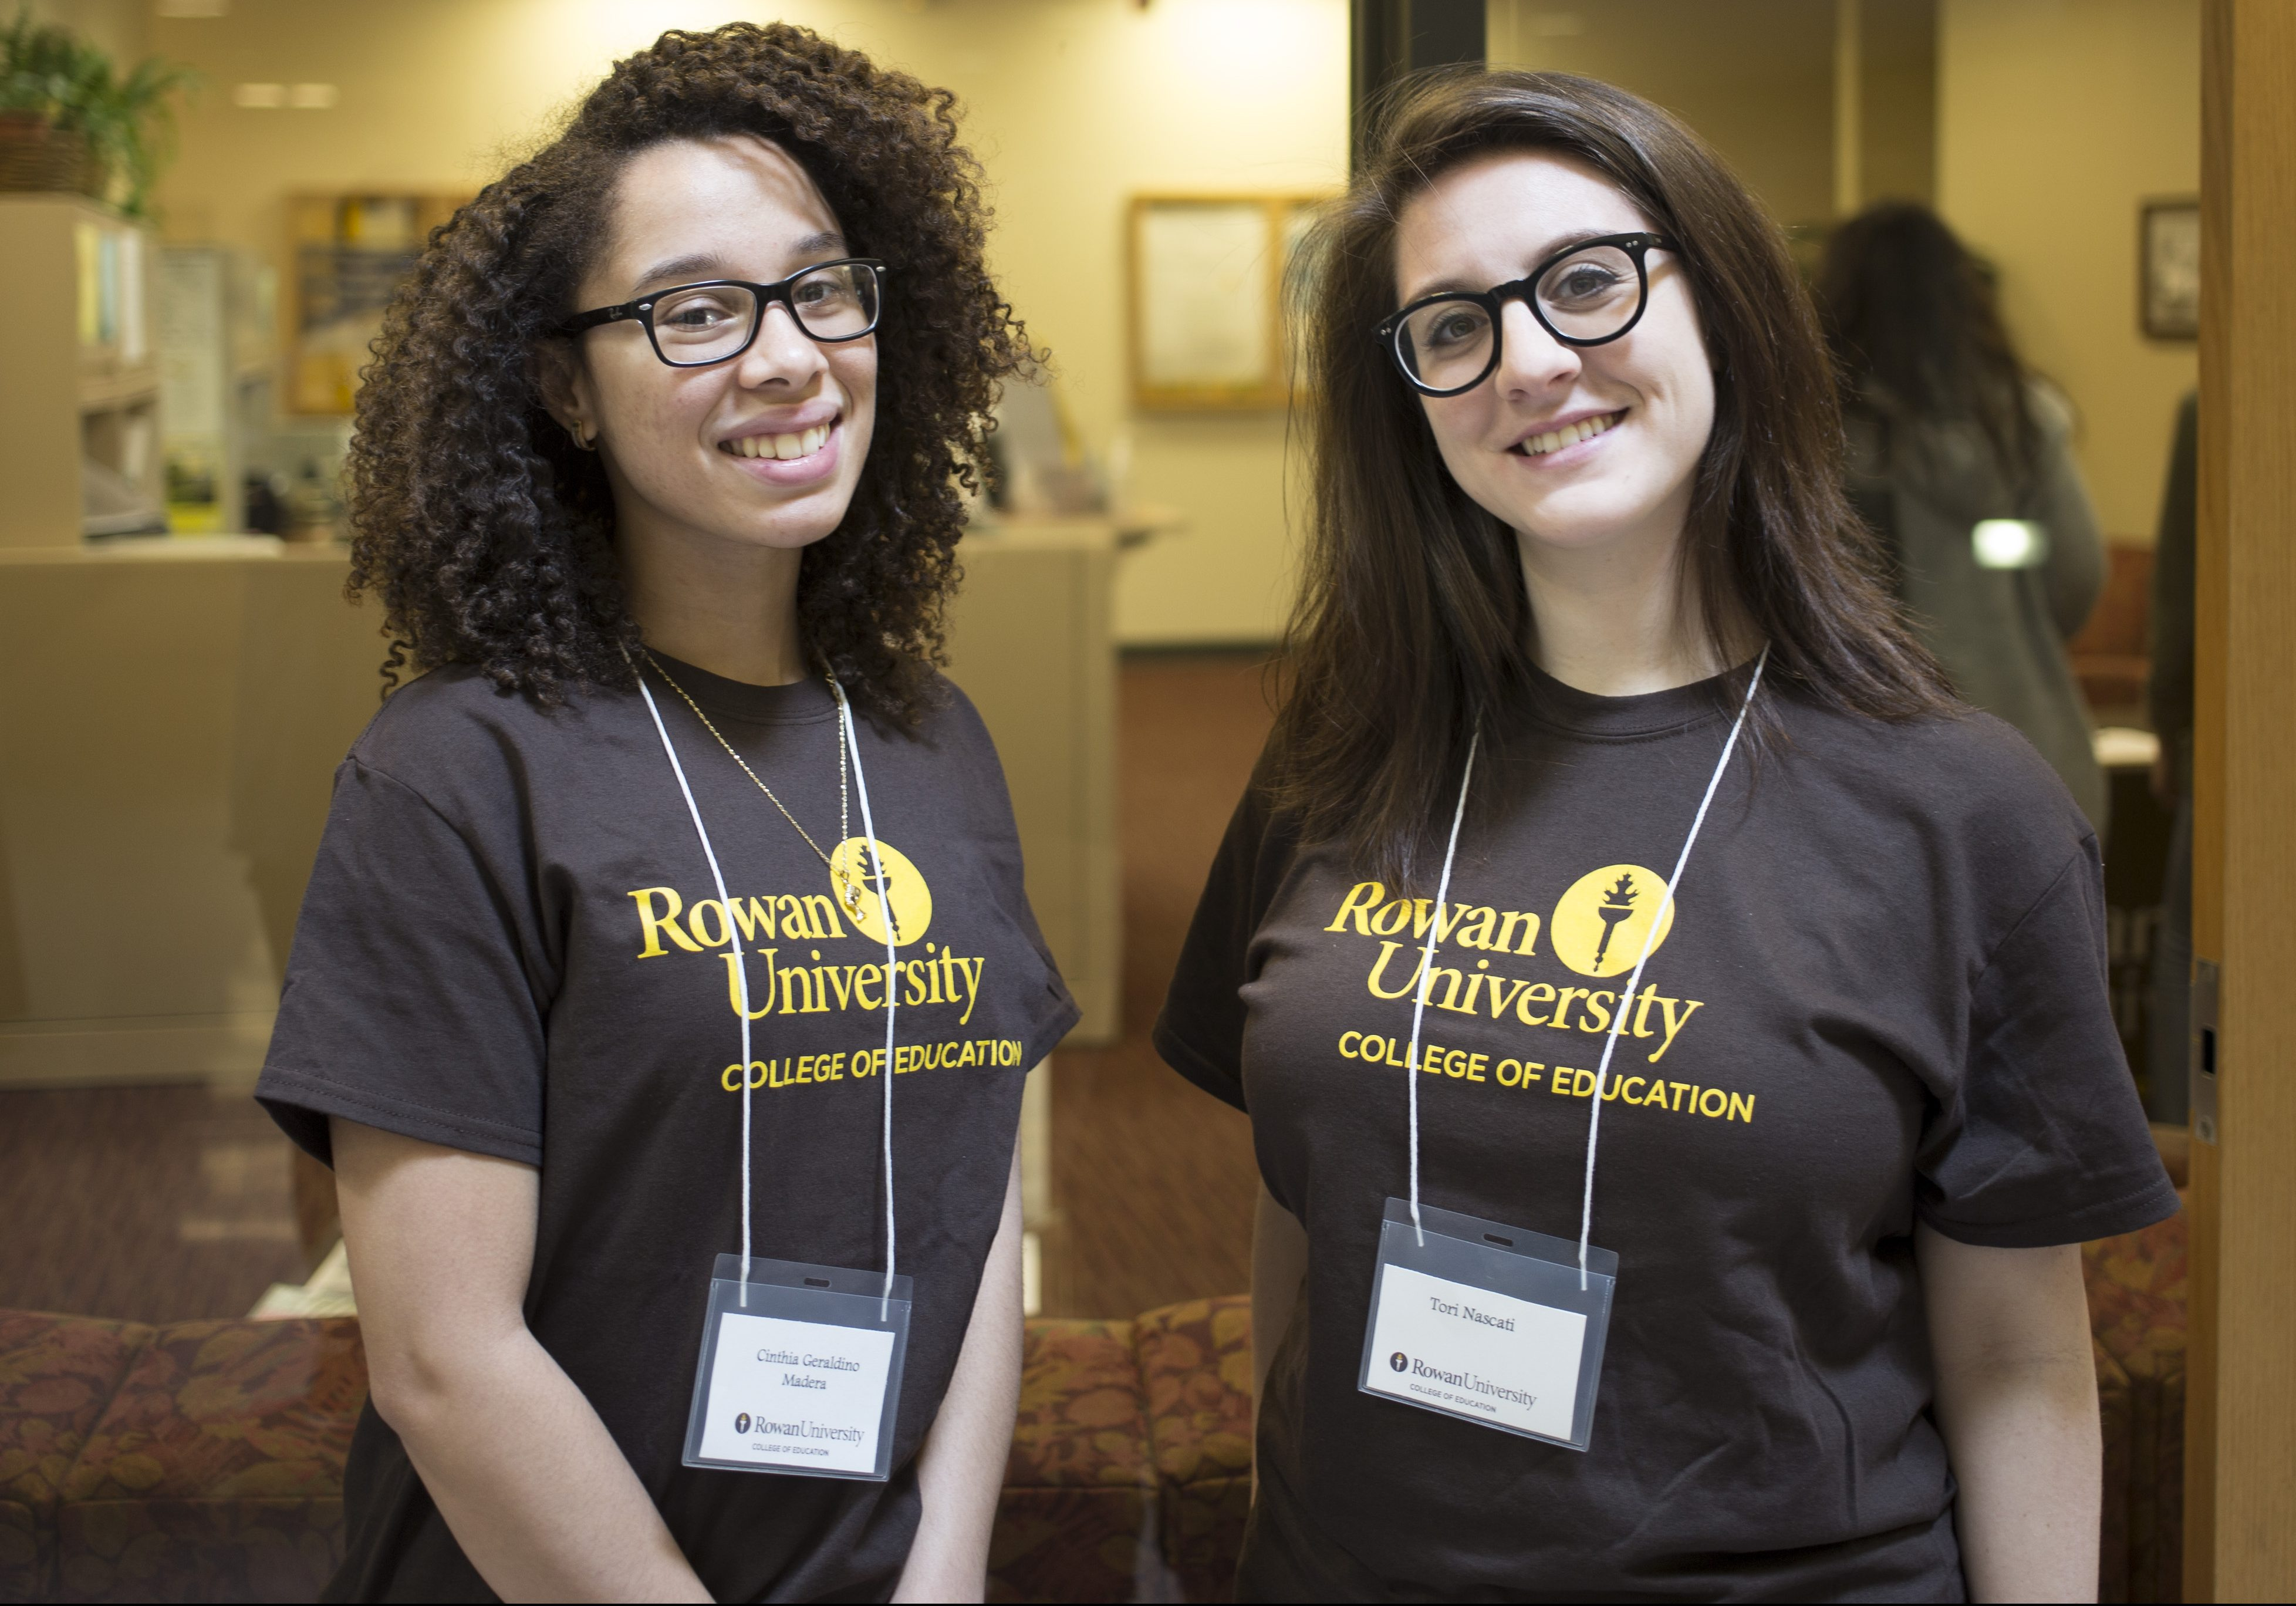 Two female student ambassadors for the College of Education